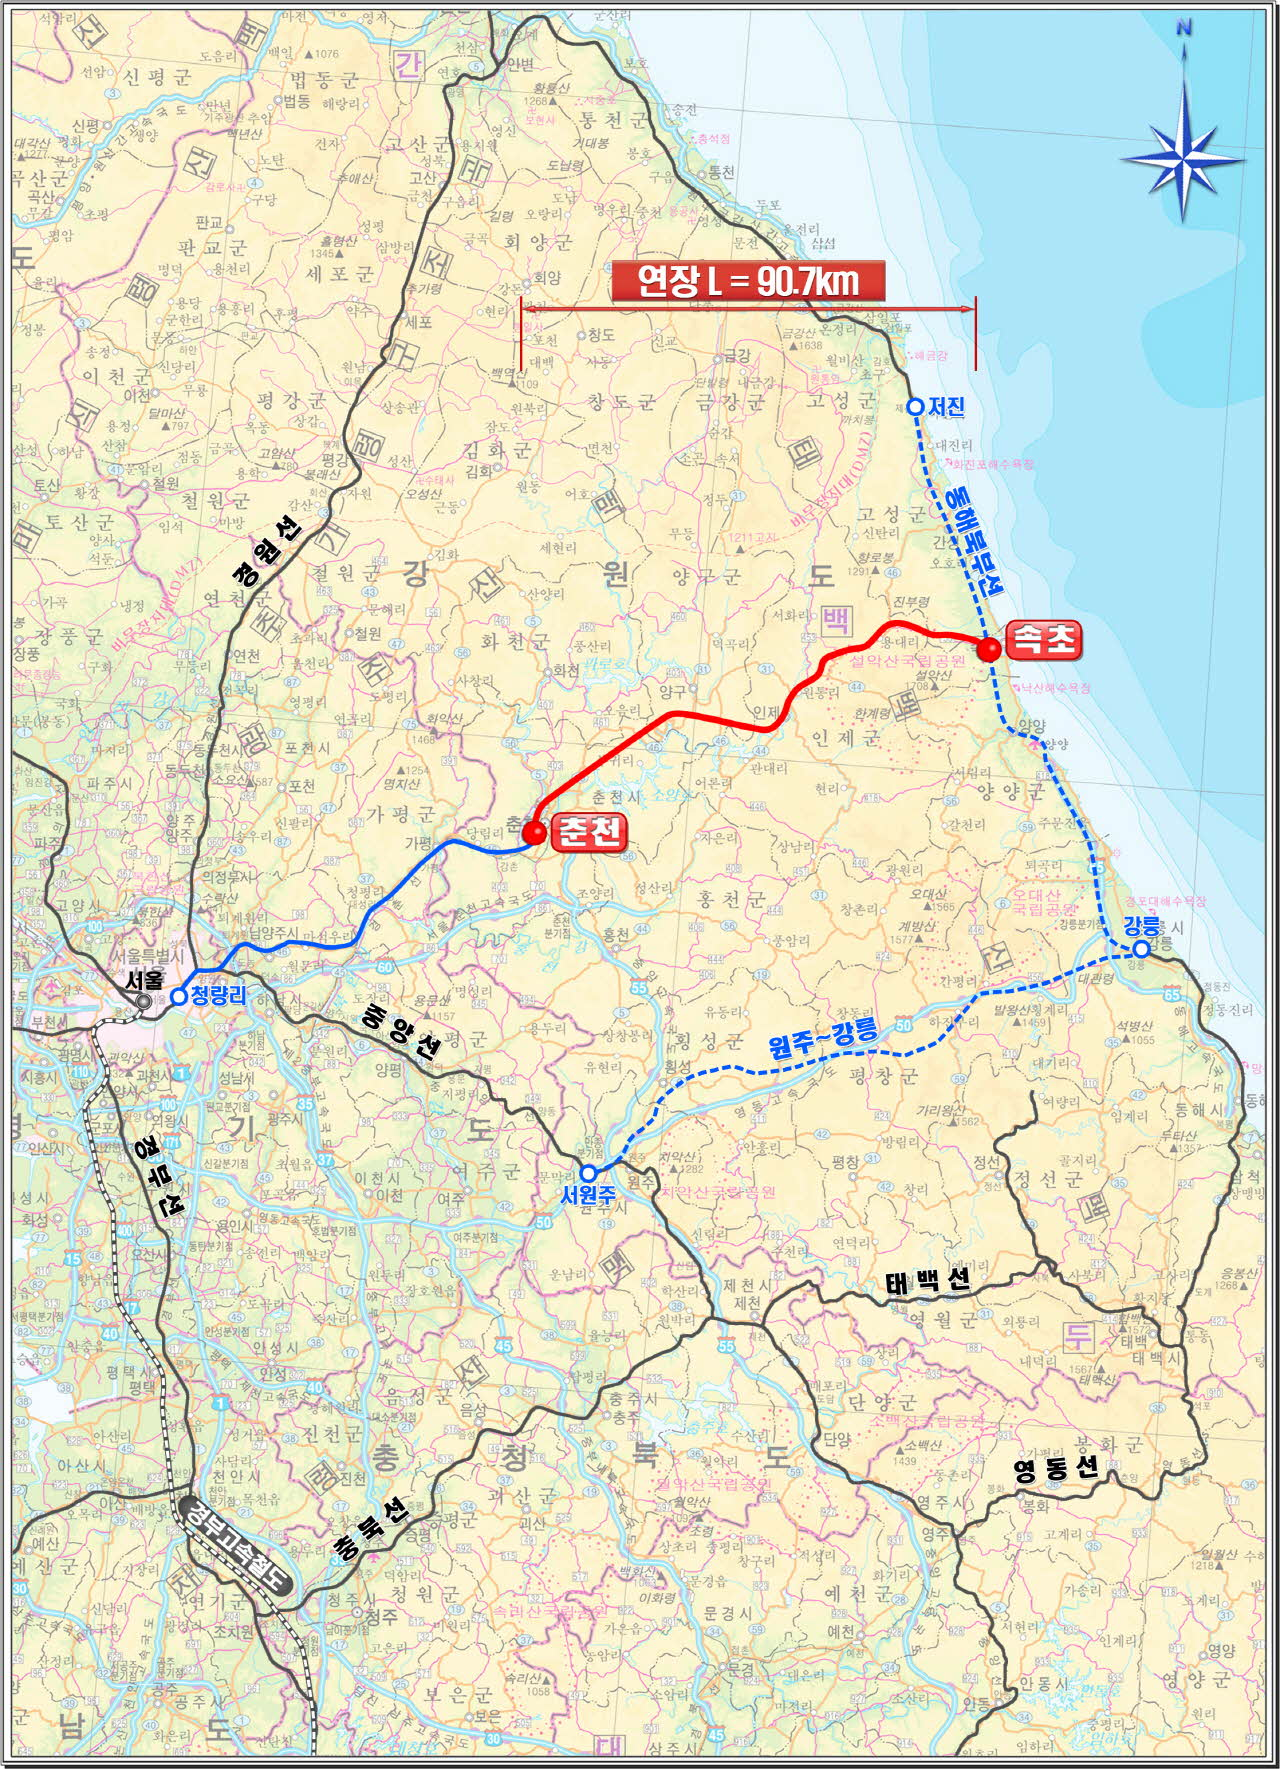 The new line to be constructed is marked in red.